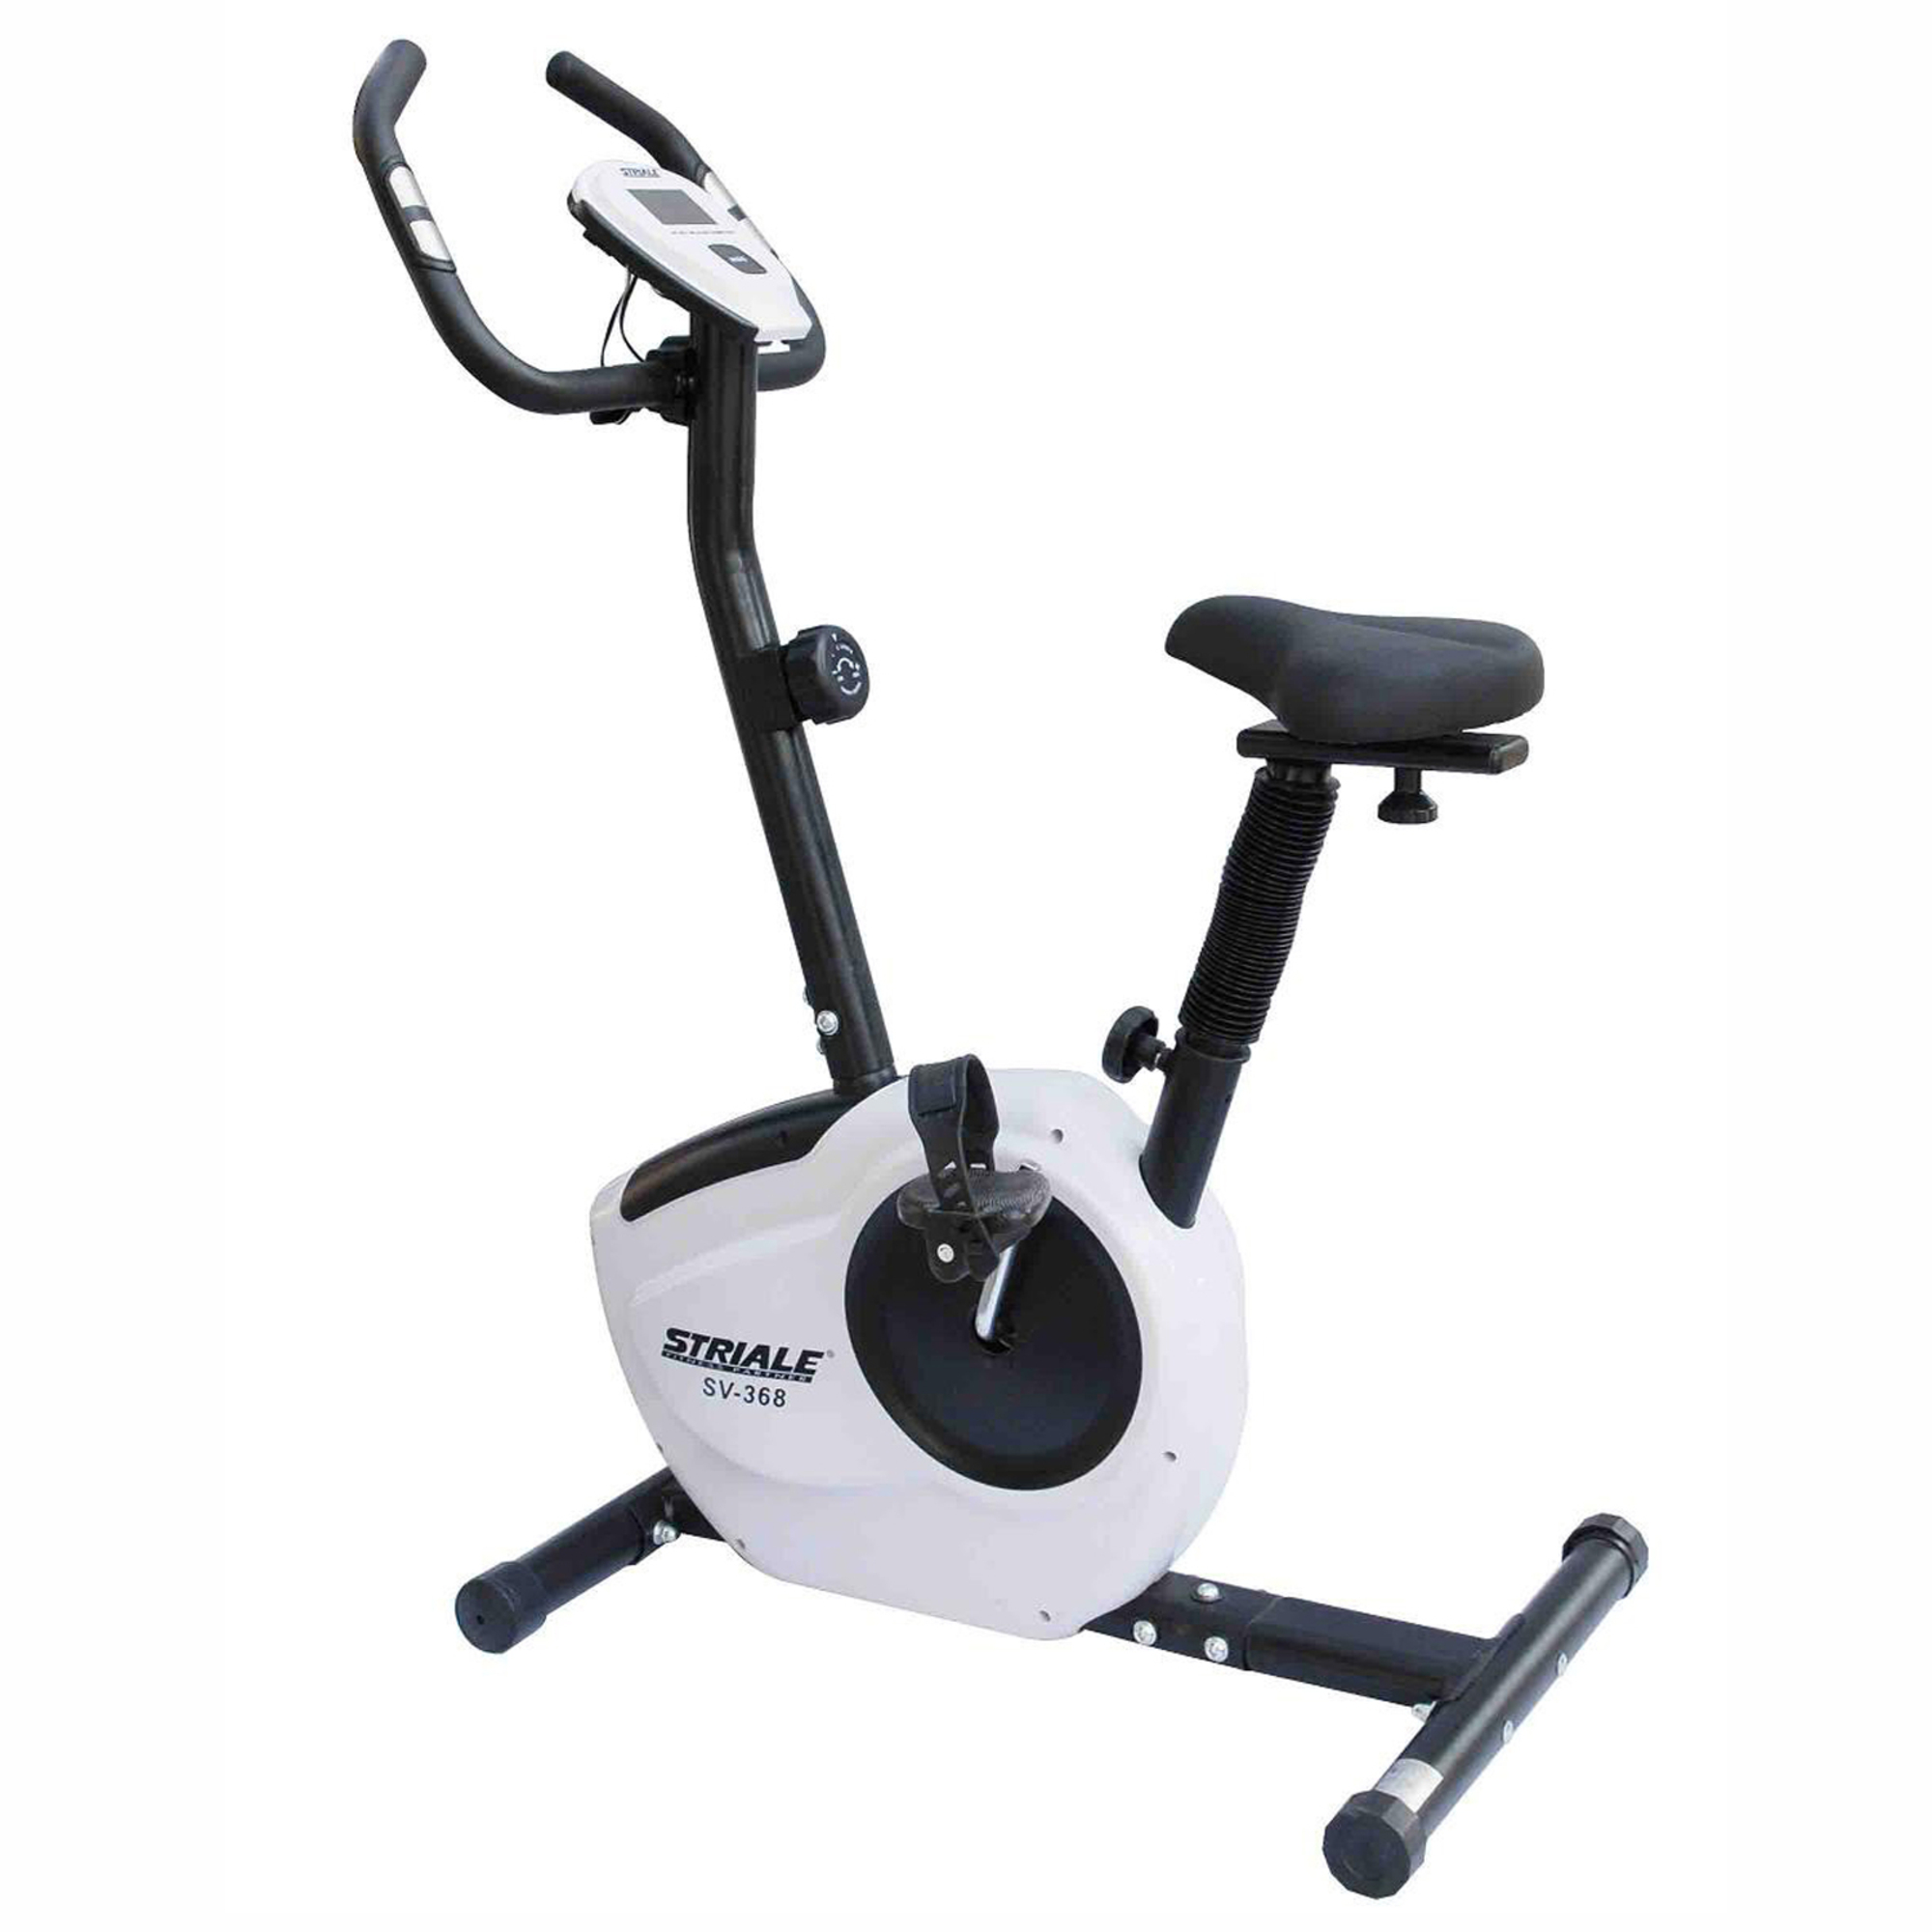 Striale v lo dappartement sv 368 - Velo fitness appartement ...